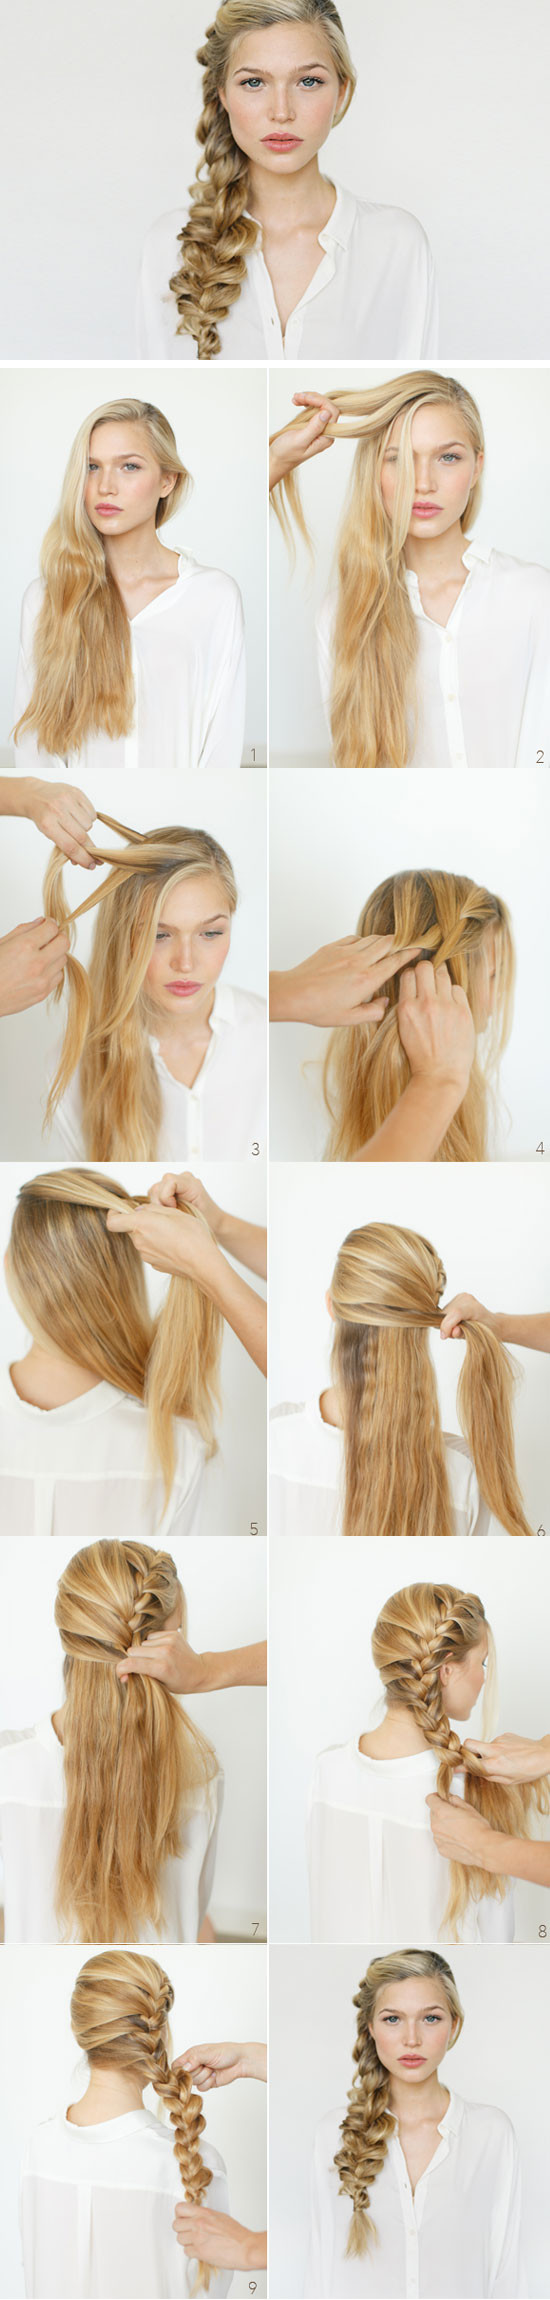 Best ideas about DIY Wedding Hairstyles For Long Hair . Save or Pin Easy DIY Wedding Hairstyles for Long Hair Now.